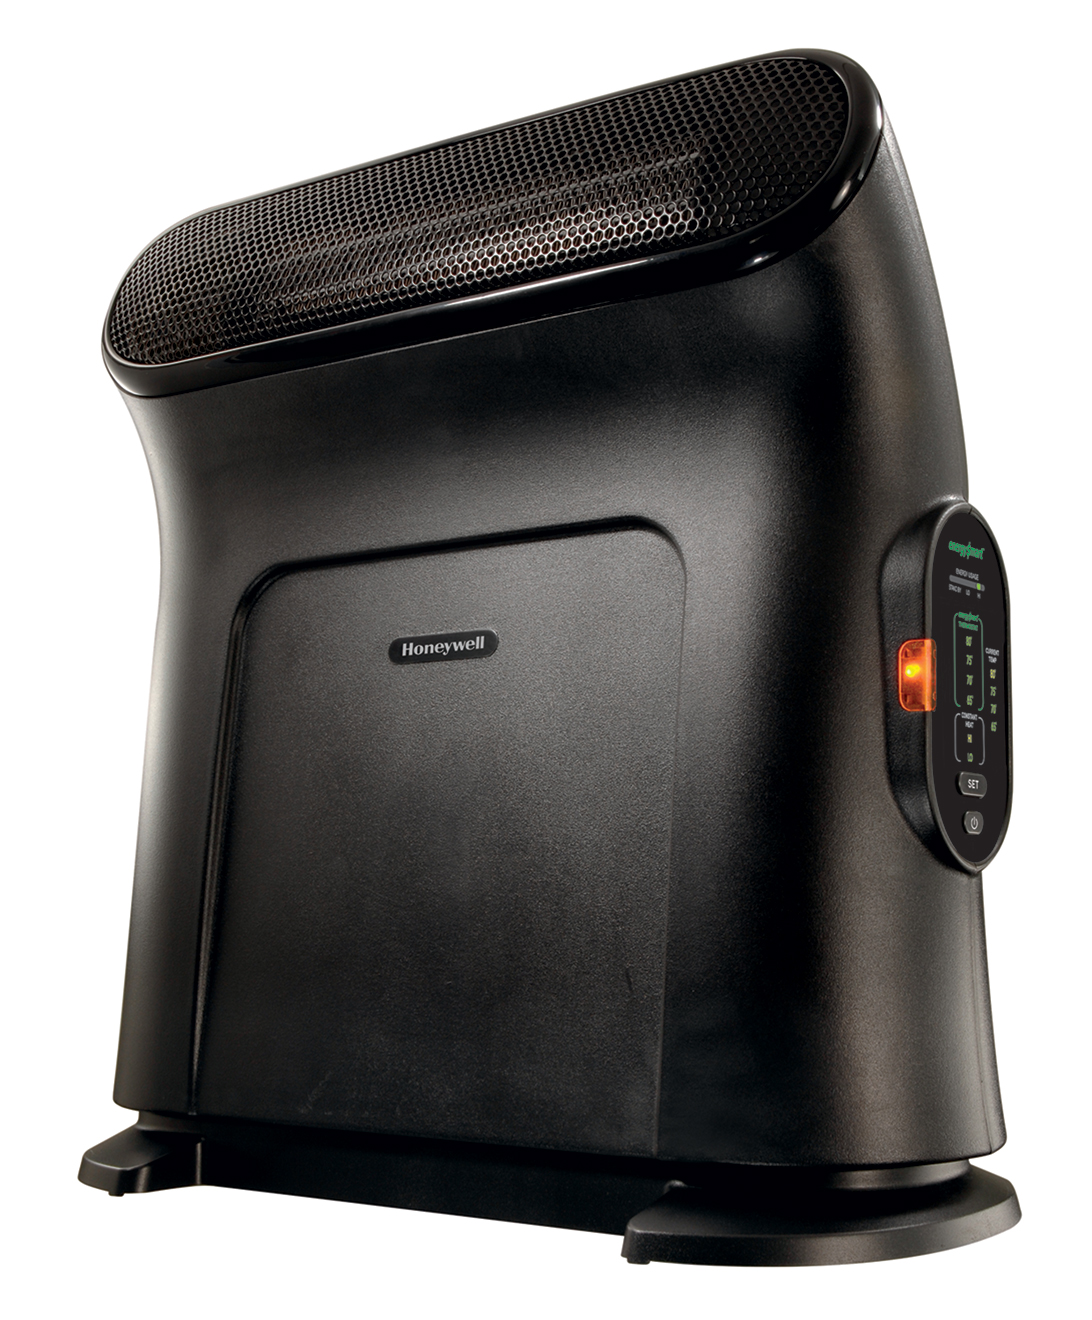 Honeywell Thermawave Electric Heater, Black, HCE860BWM